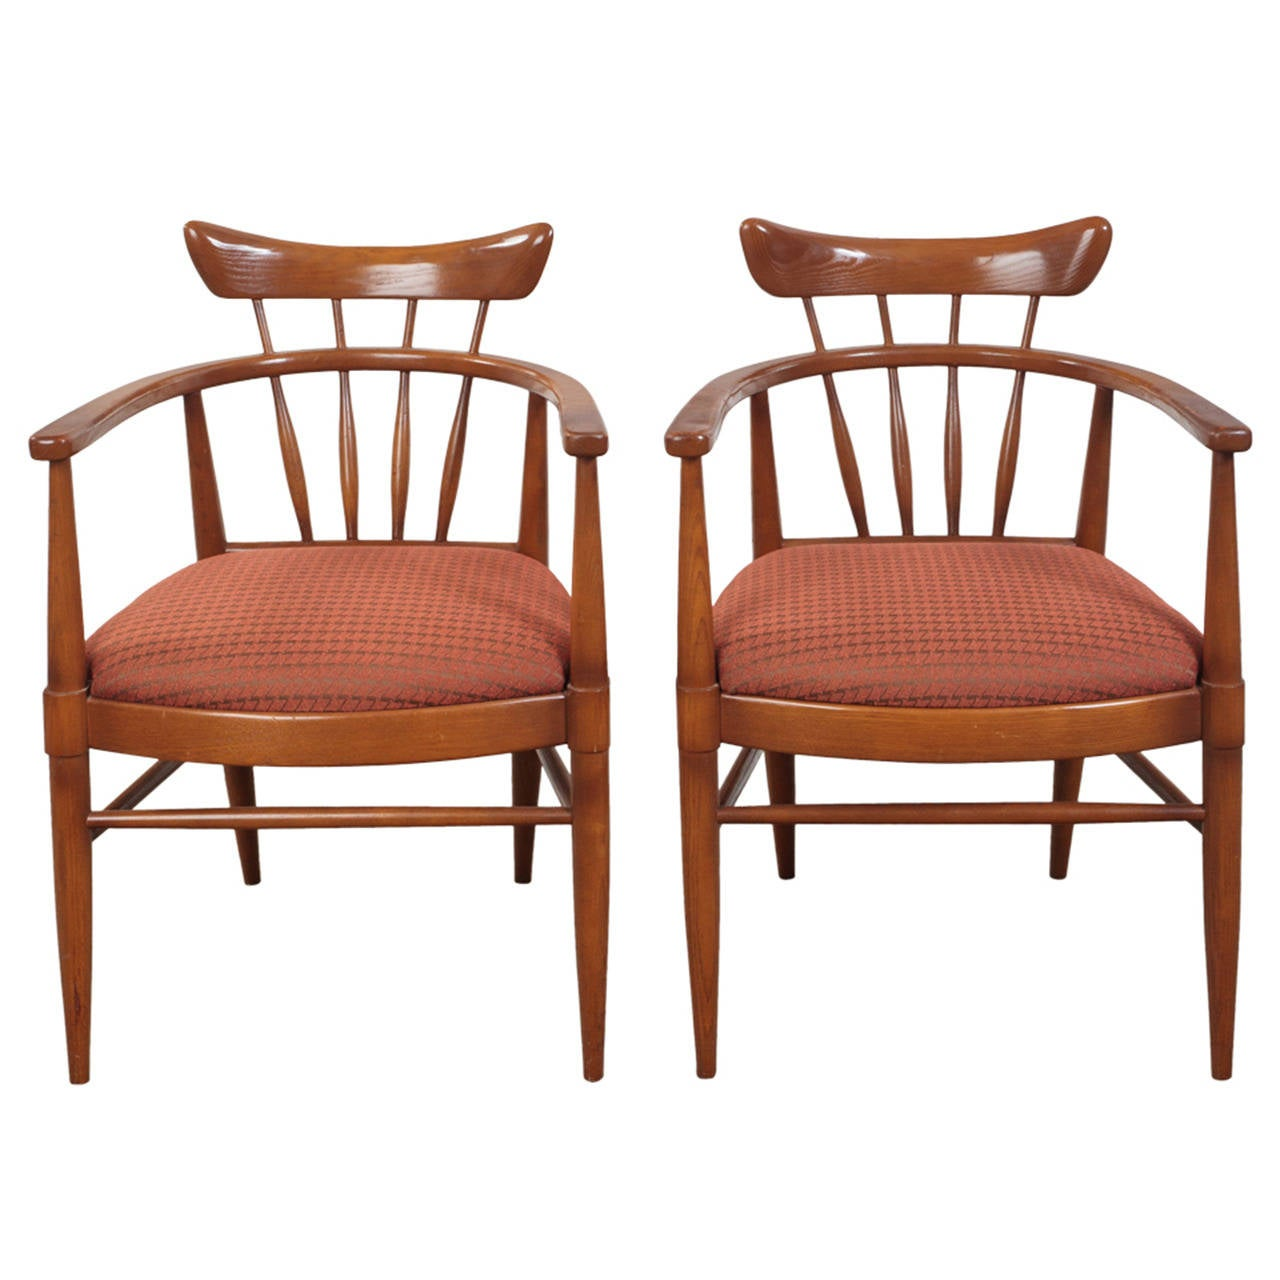 Drexel Chairs Edward Wormley For Drexel Brace Back Arm Chairs For Sale